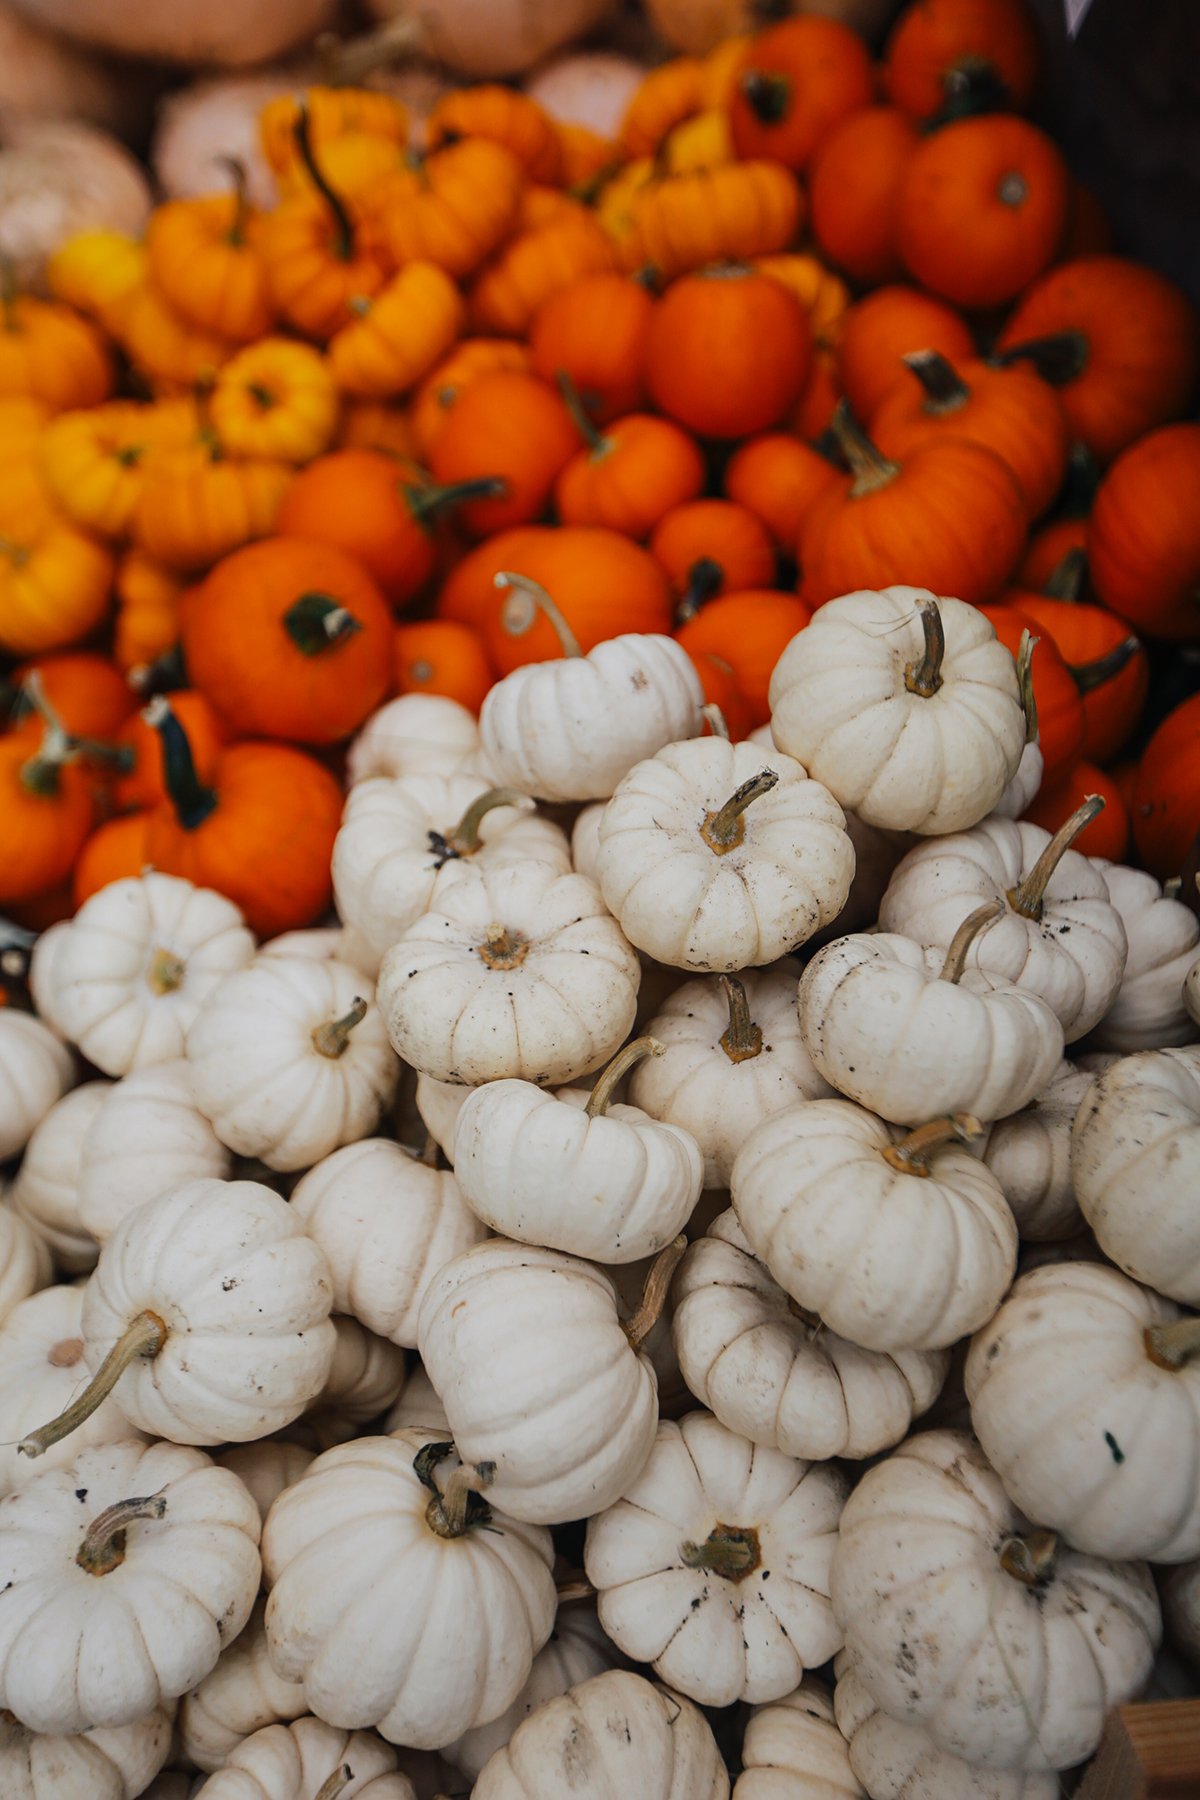 Pumpkins of all colors